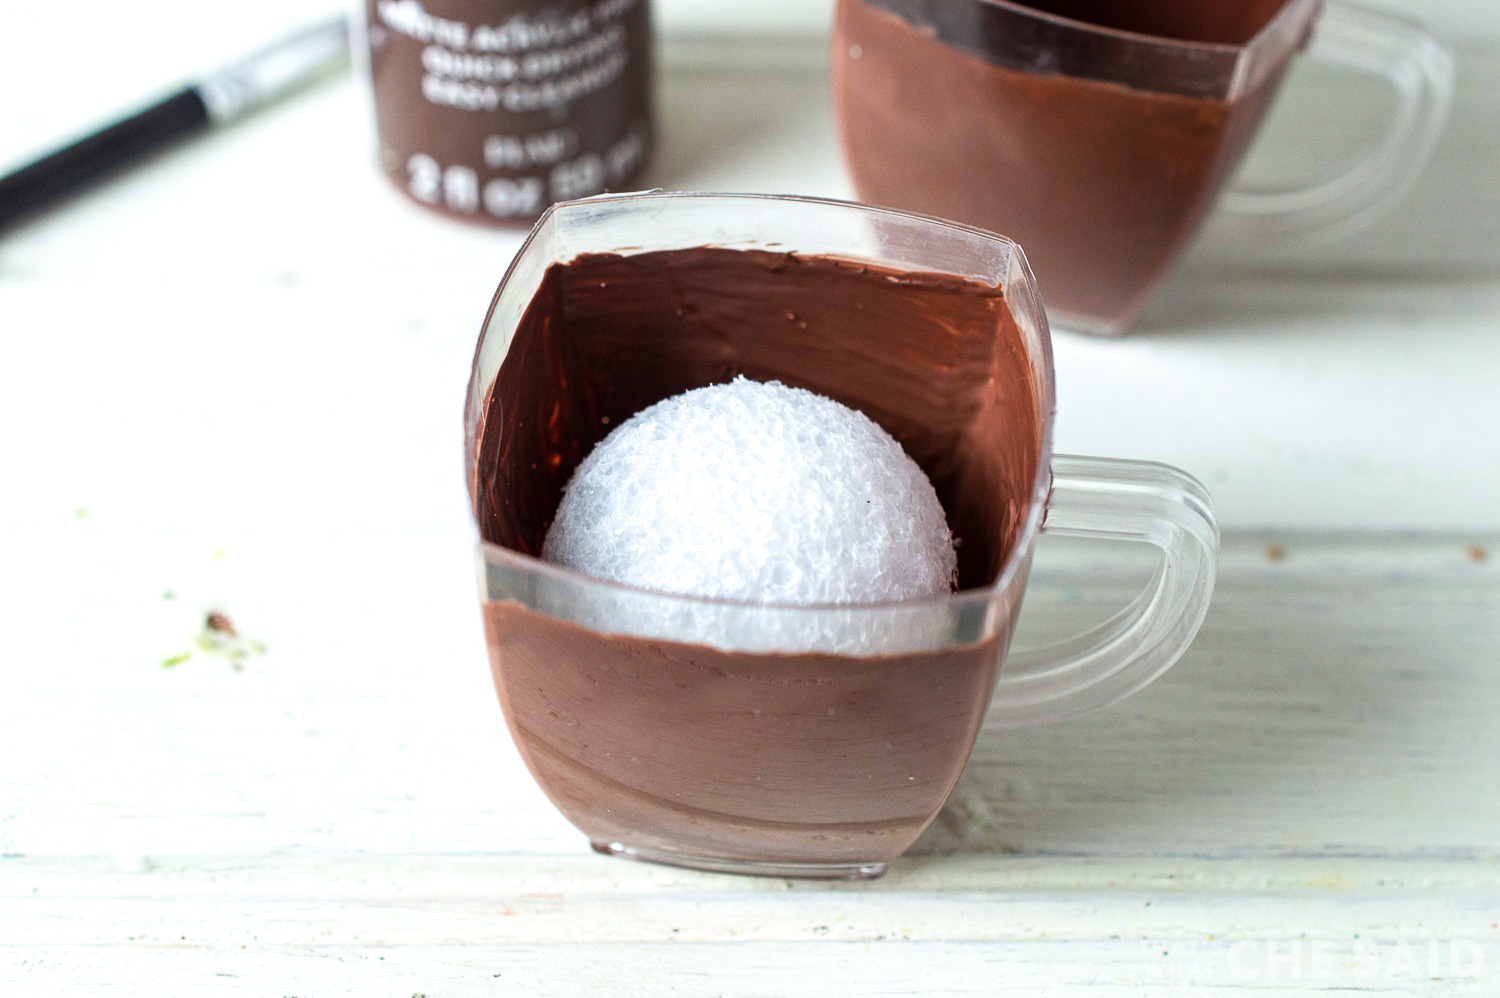 Add styrofoam ball inside cup to take up space